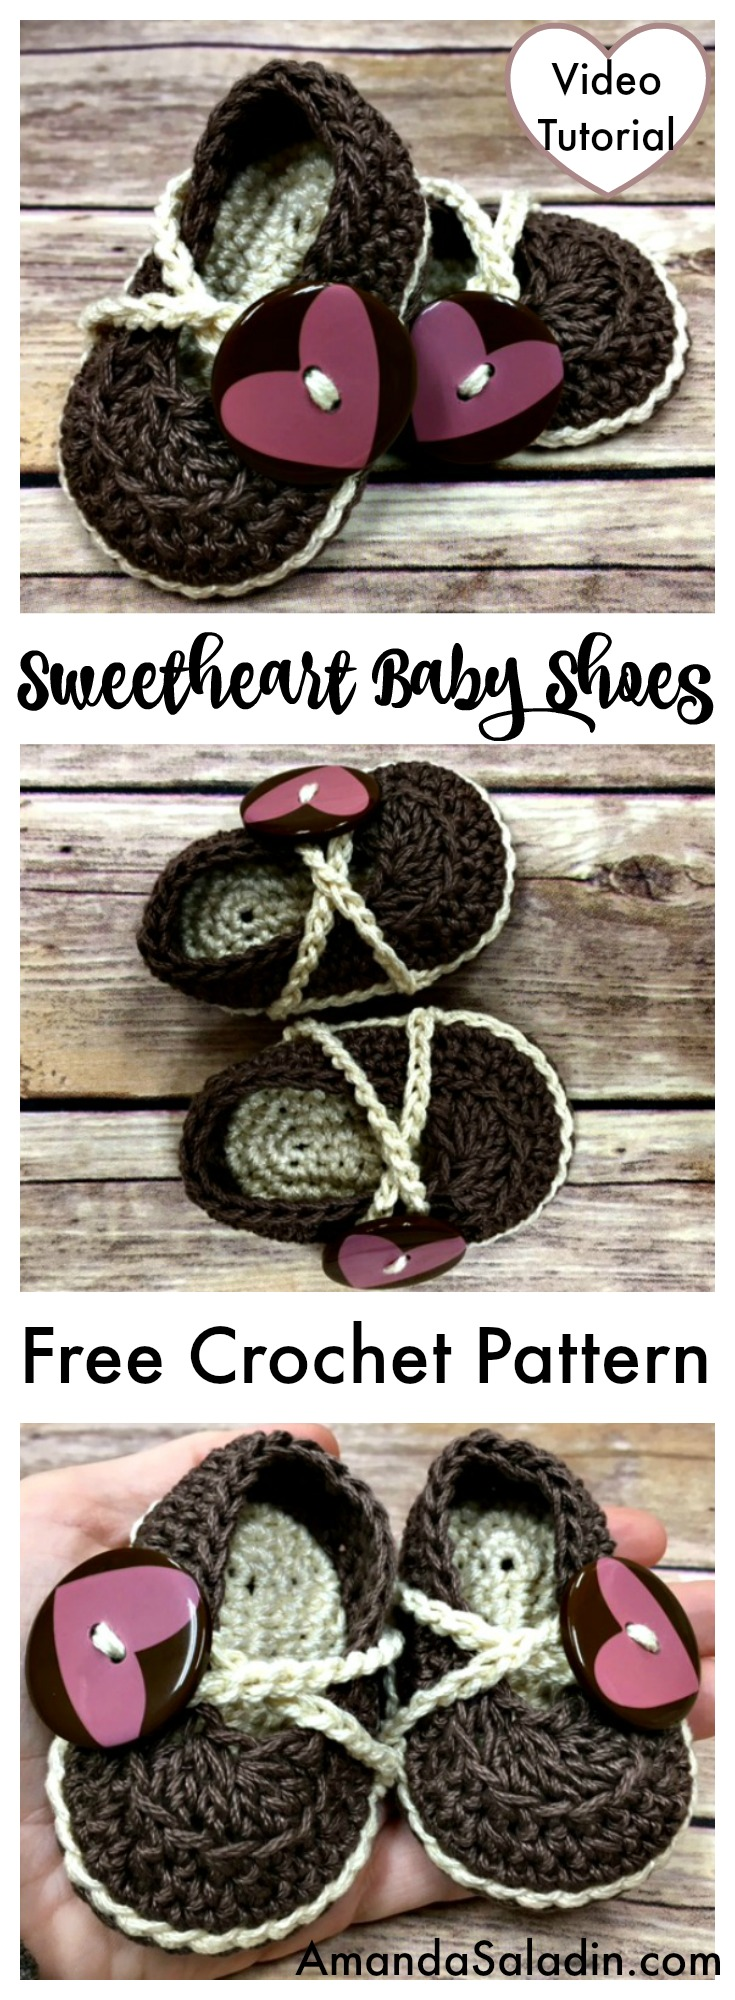 Free Pattern with Video Tutorial - Sweetheart Baby Shoes